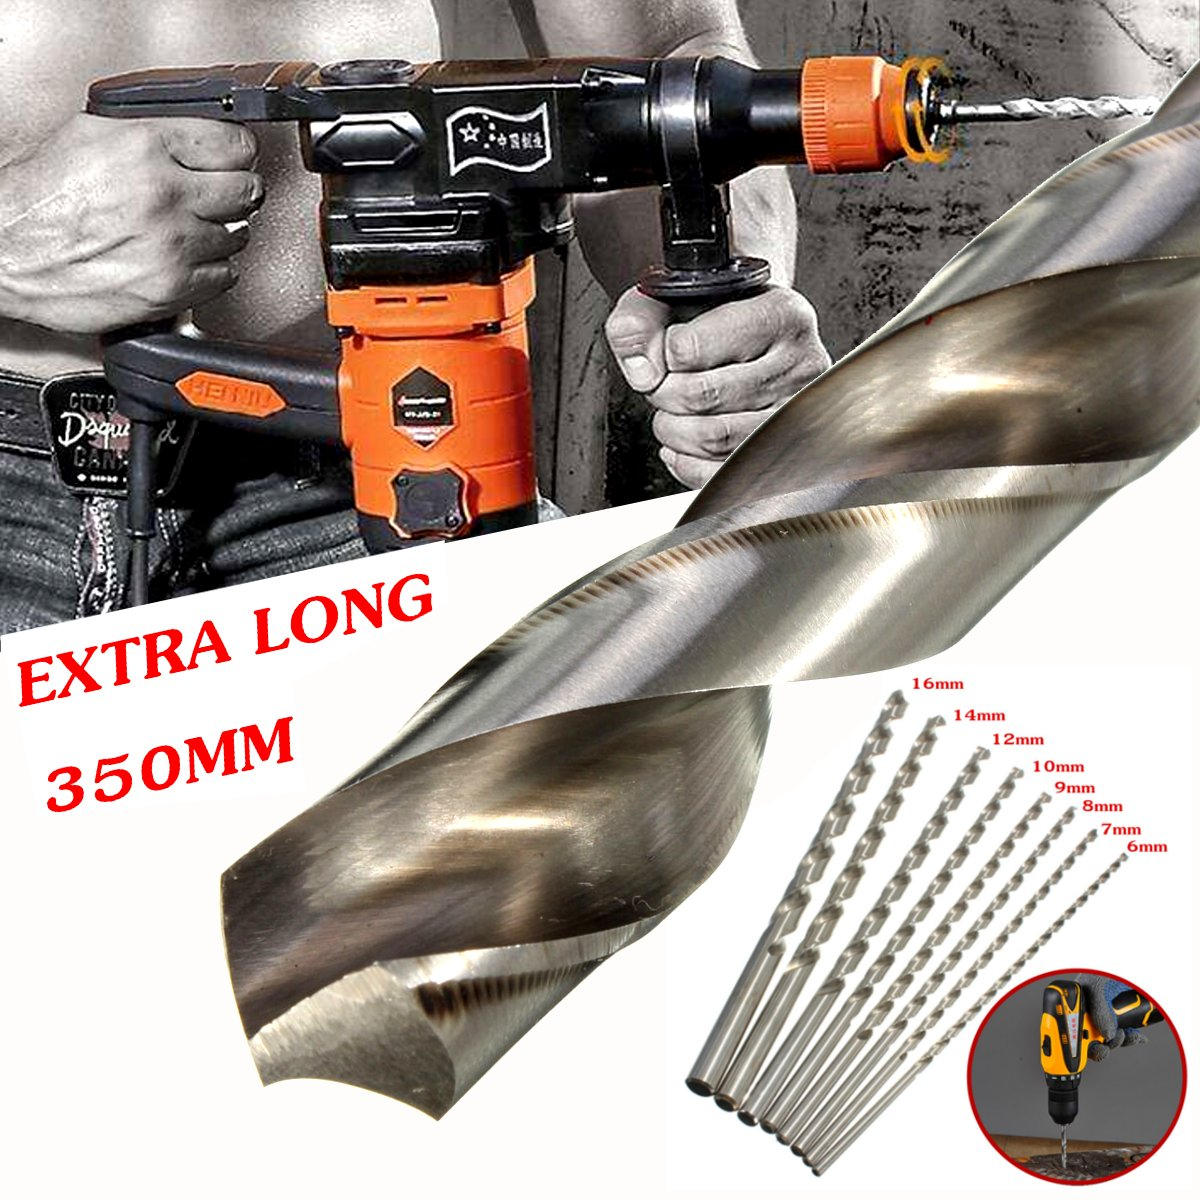 6-16mm Diameter Extra Long 350mm HSS Auger Twists Drill Bit Straight Shank Drill Bit For Plastic / Metal /Wood Drilling